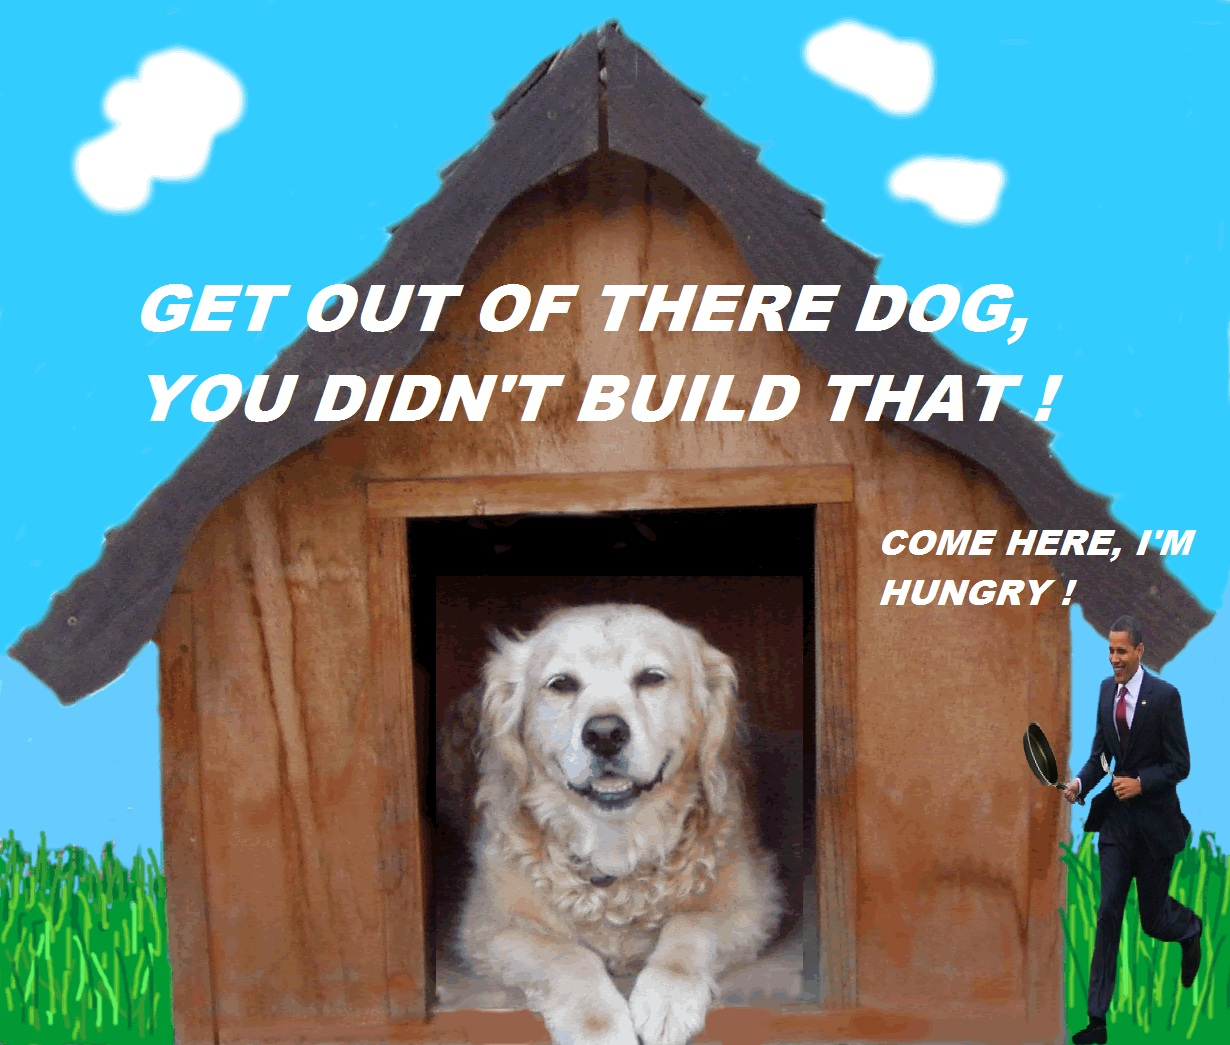 453 in the dog house obama the eater of dogs know your meme,Doghouse Meme